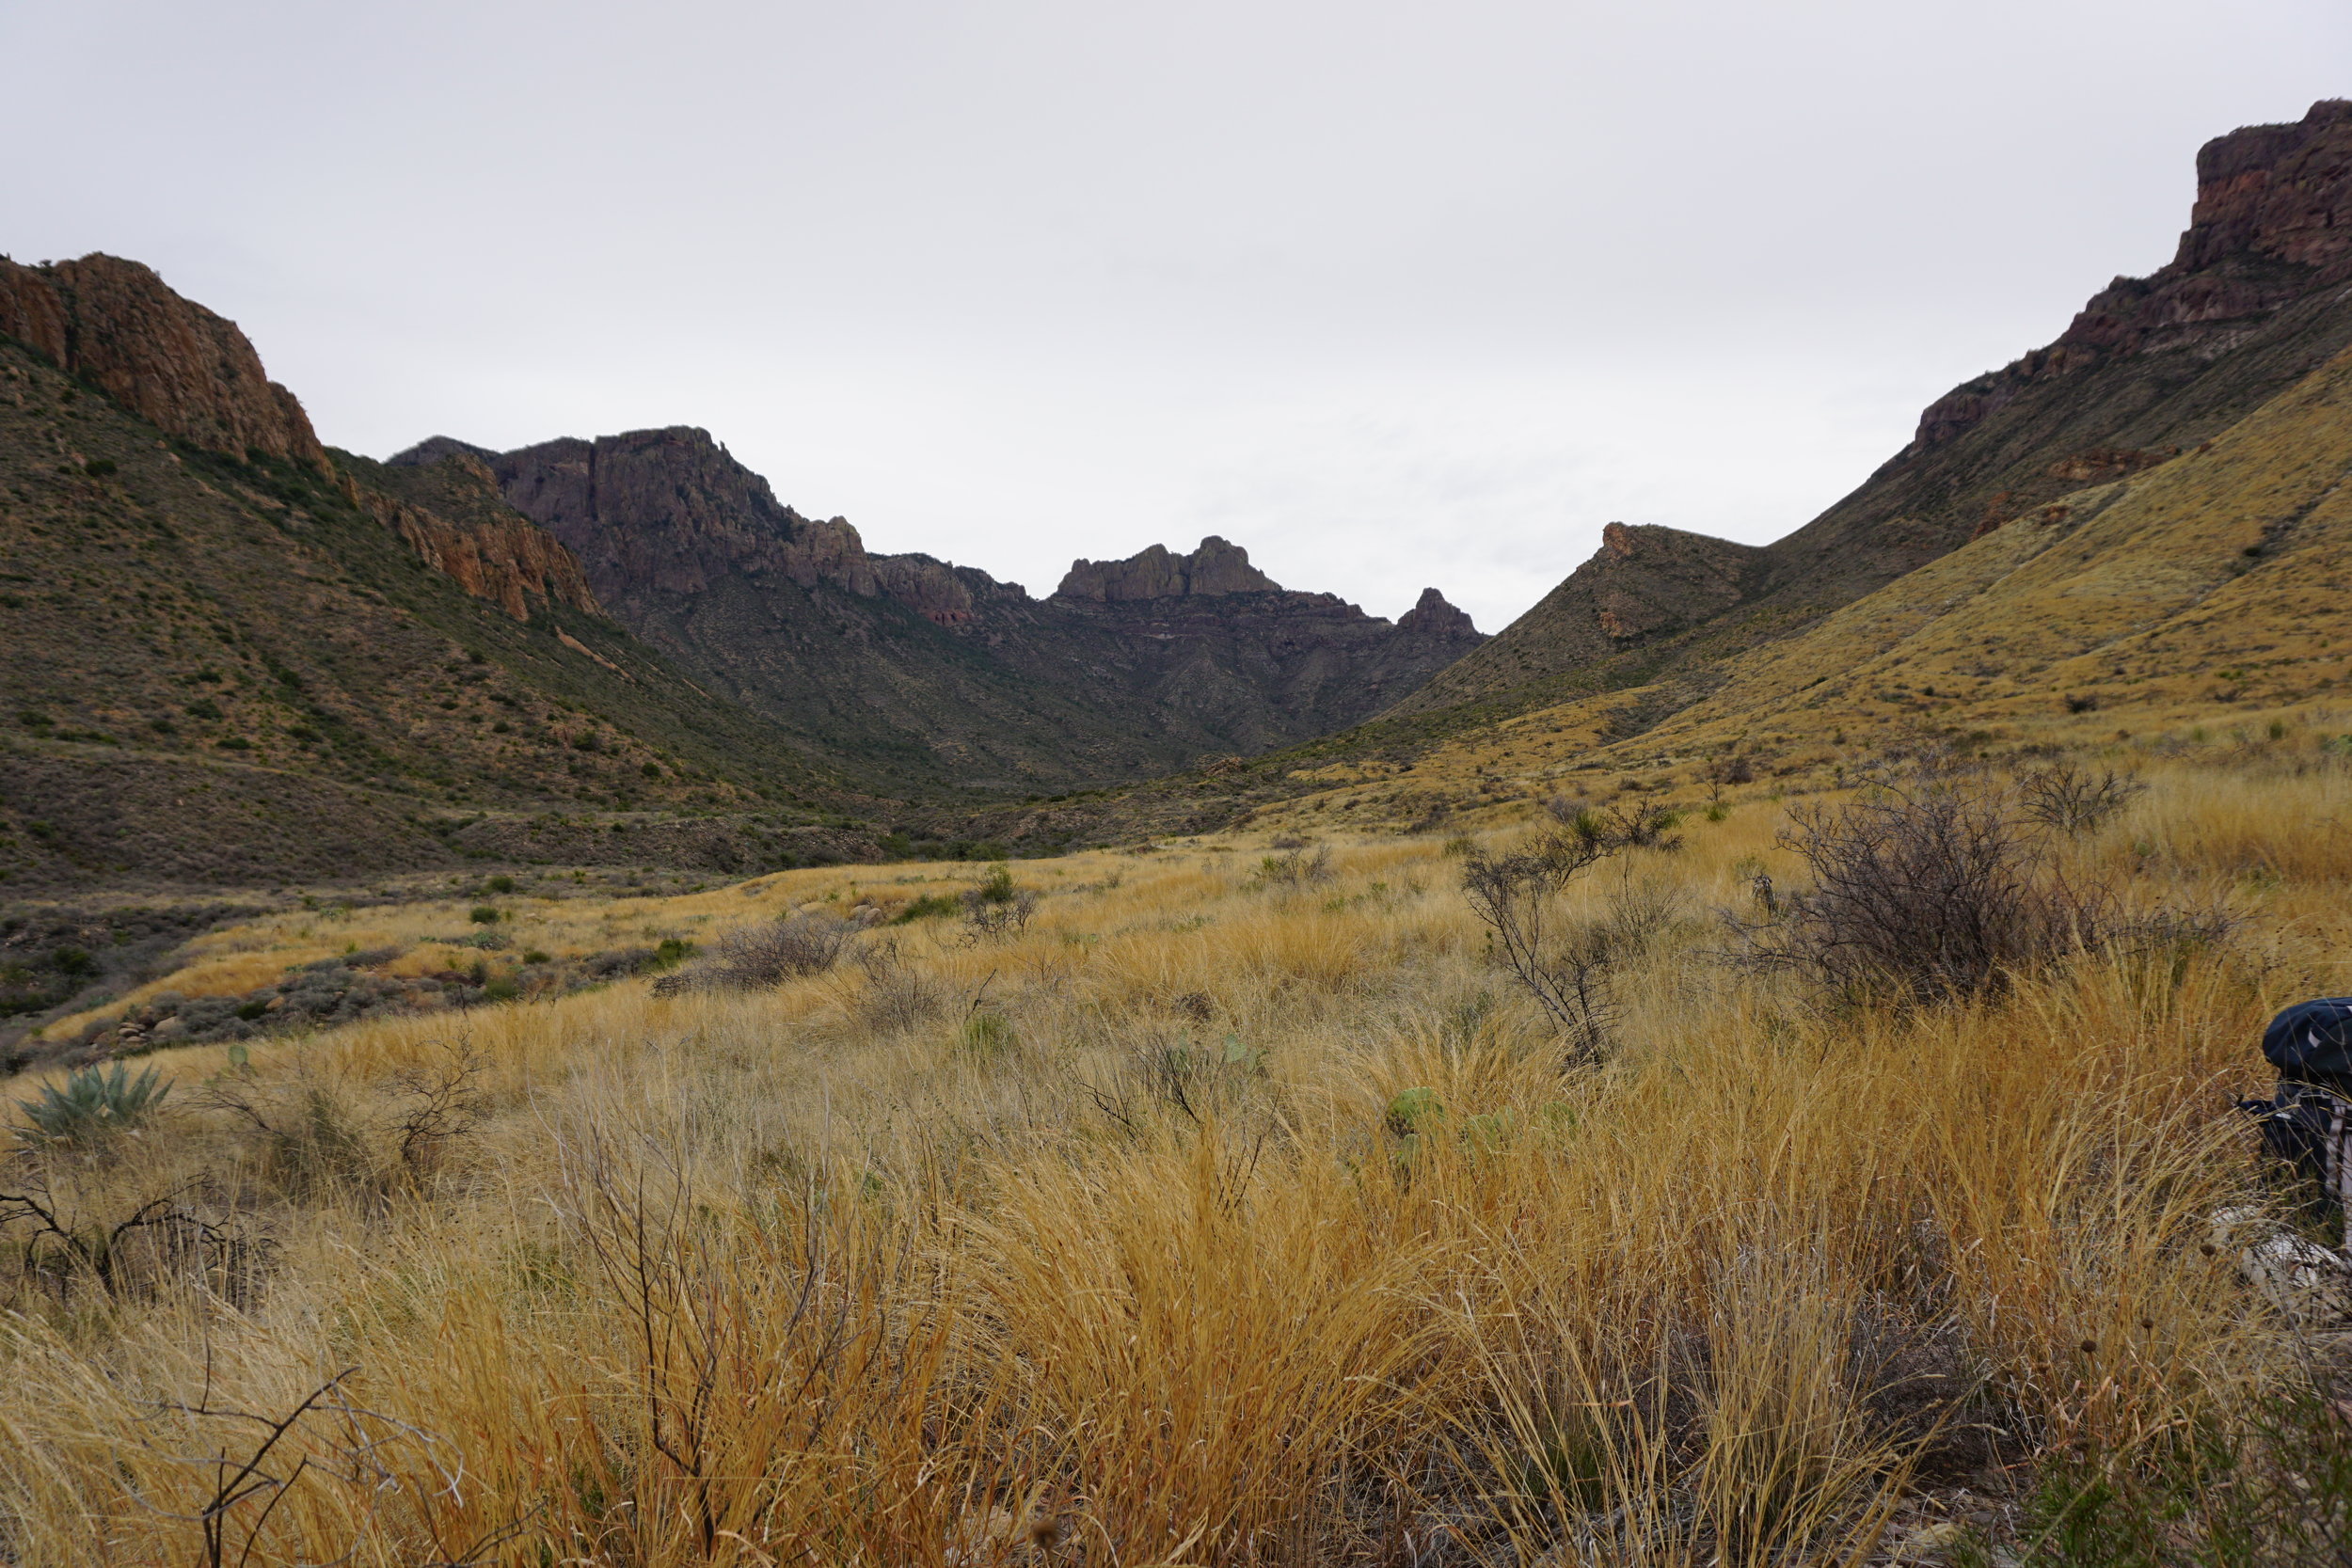 DSC04131 desert grasslands Big Bend Texas.JPG